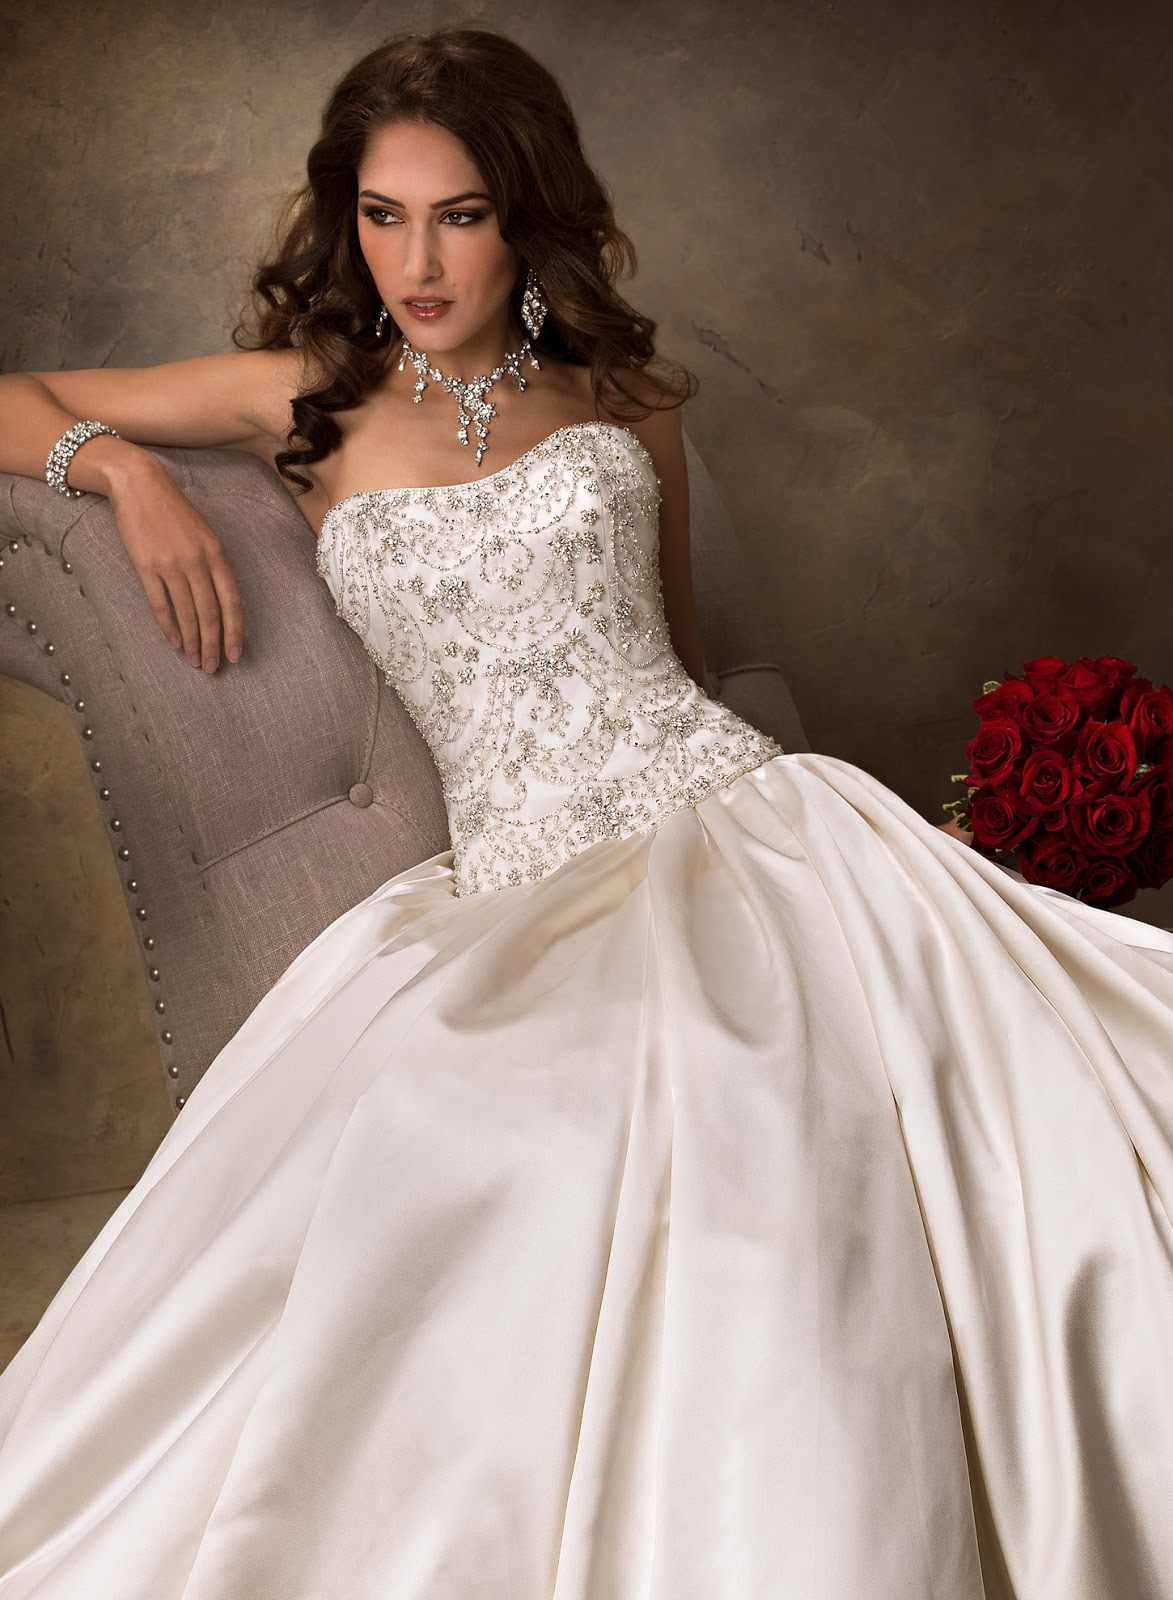 The Twisted Tulip Blog: Denver Florists- Wedding dresses 2013 ...